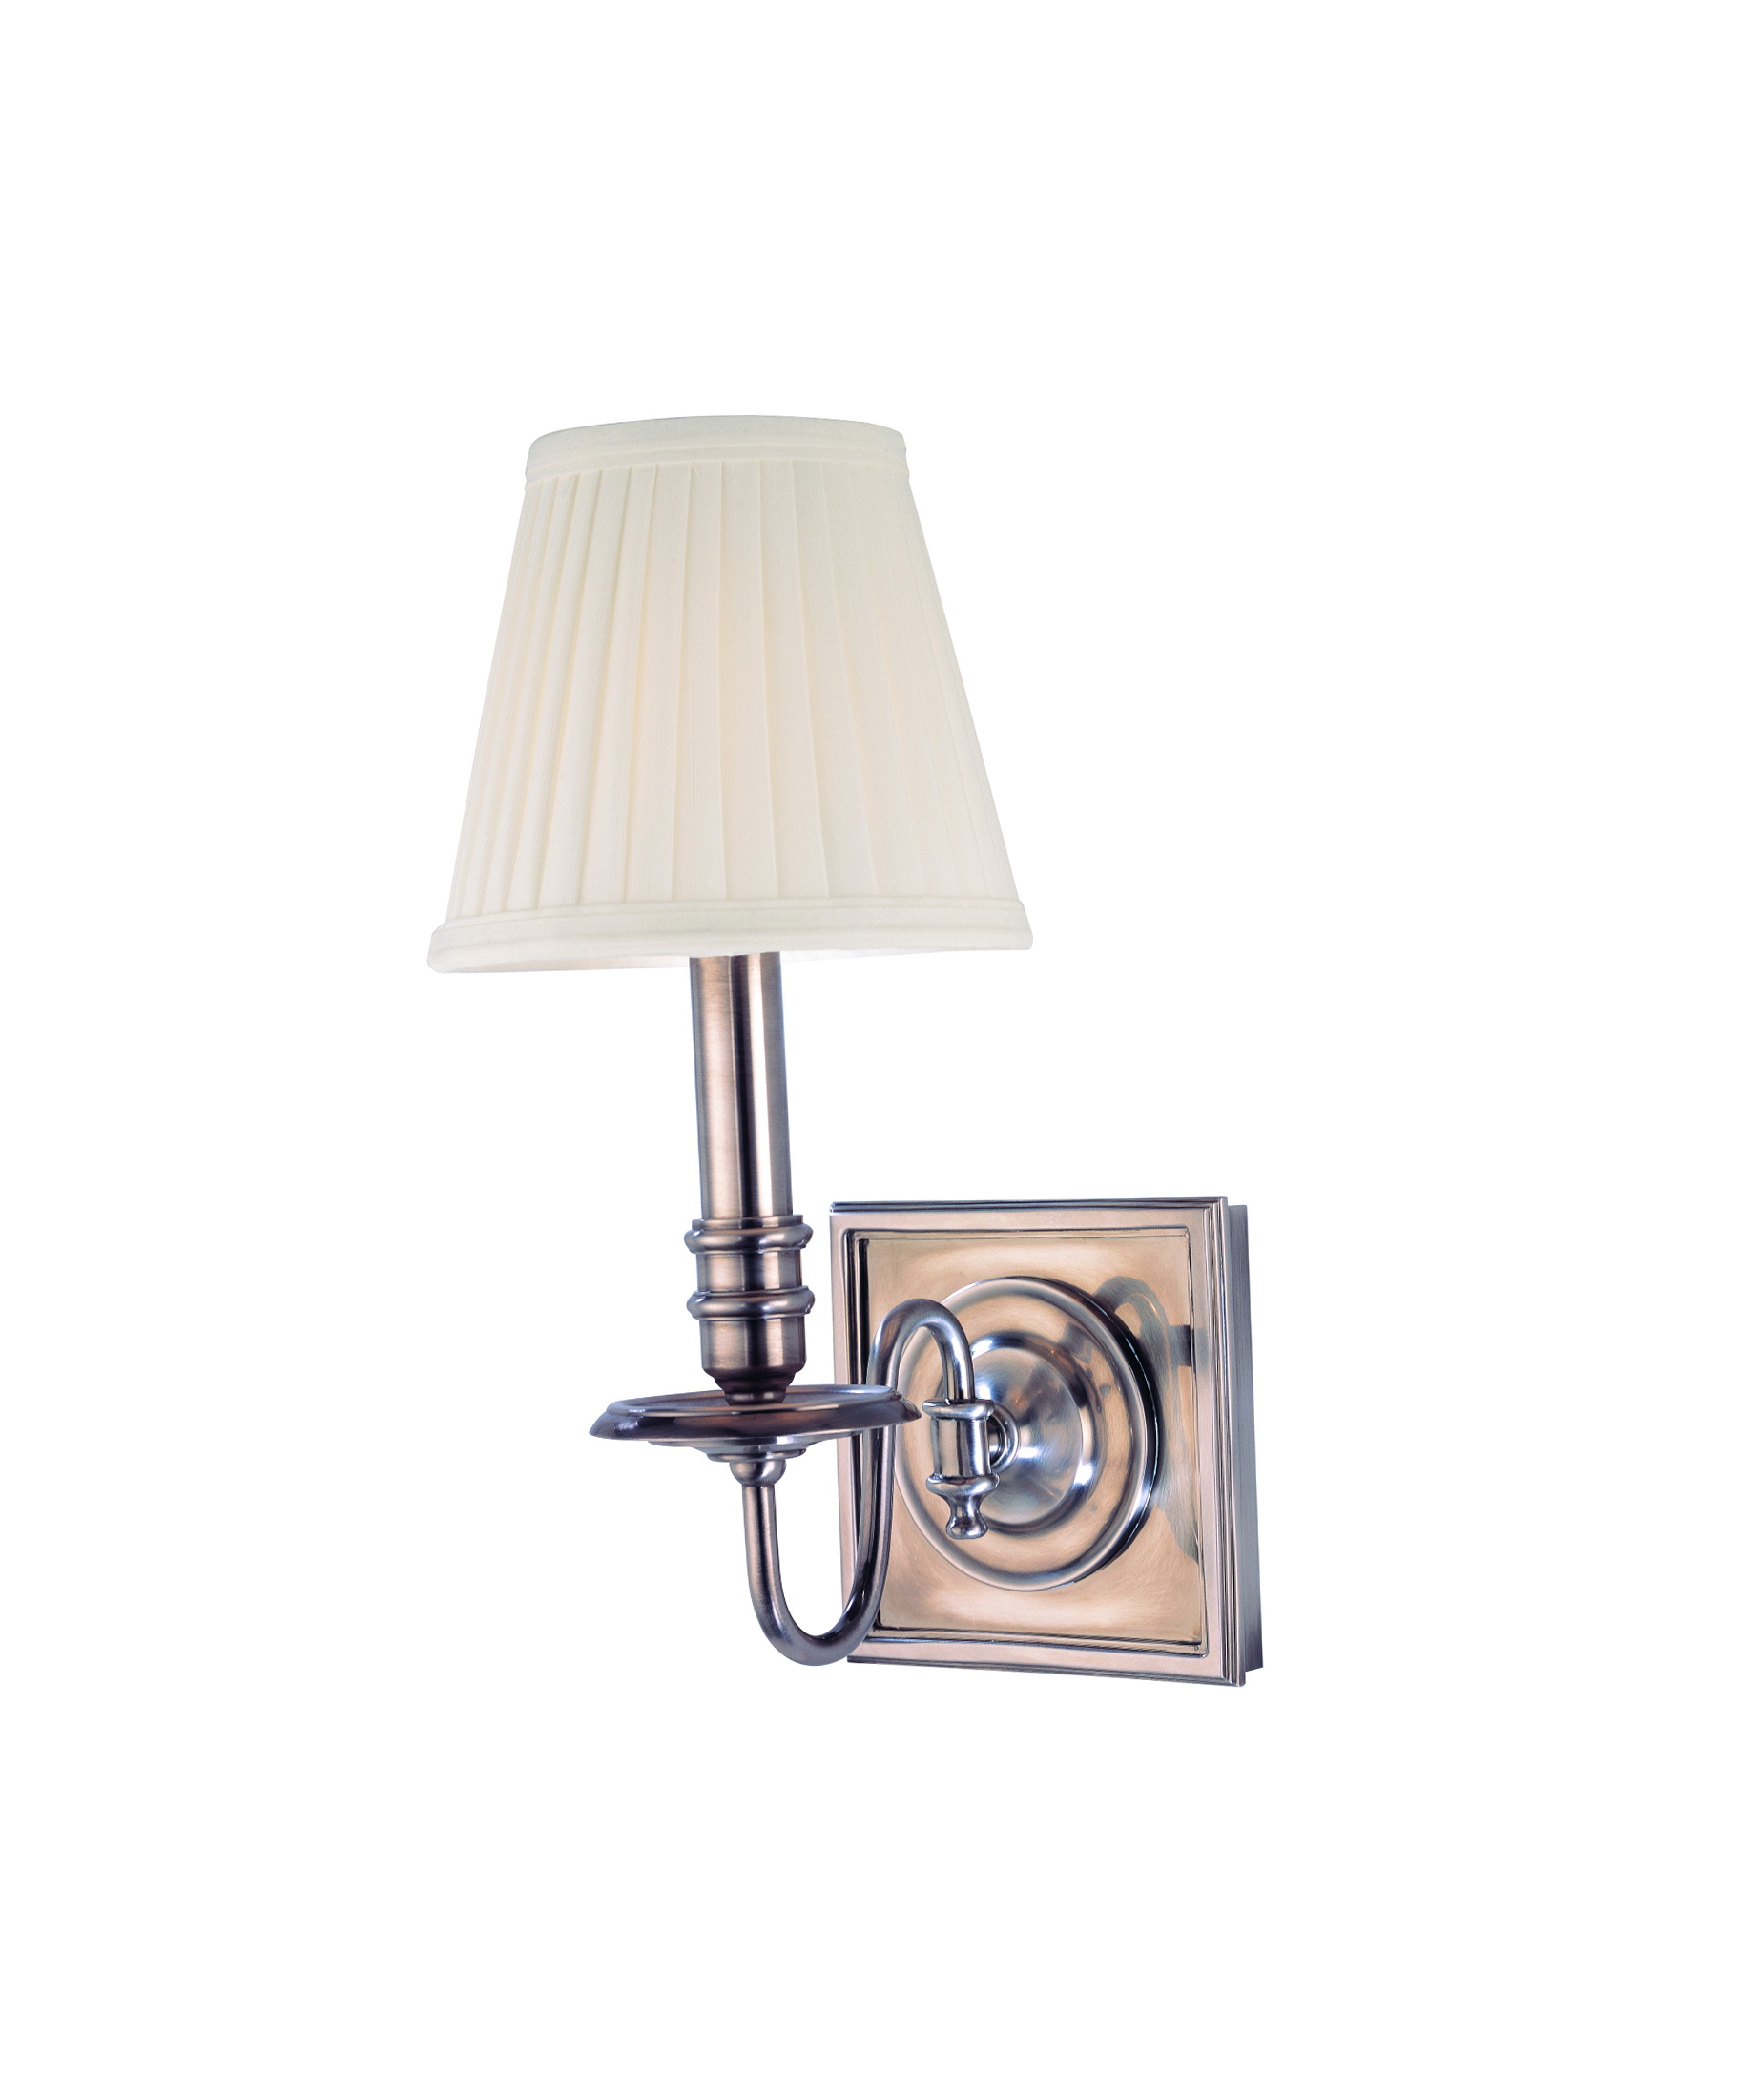 Hardwired Wall Sconce With On Off Switch | Home Design Ideas